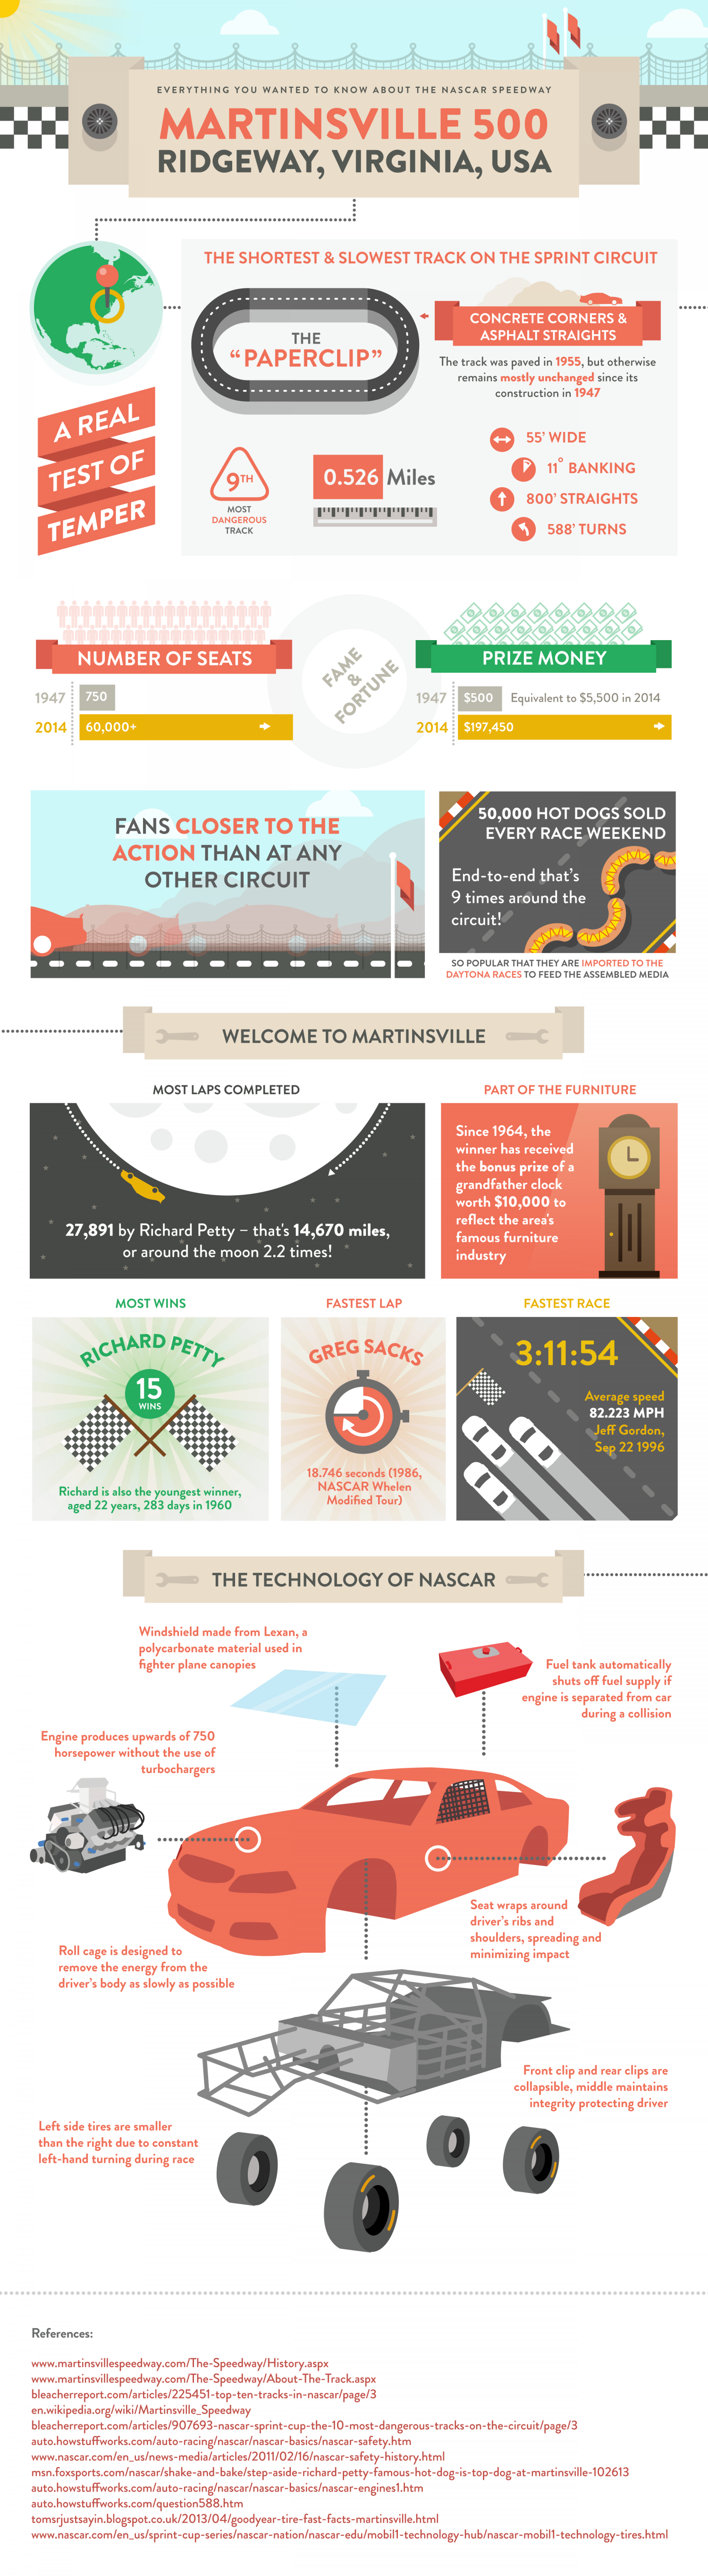 Everything you Wanted to Know About the NASCAR Speedway Martinsville 500 Infographic